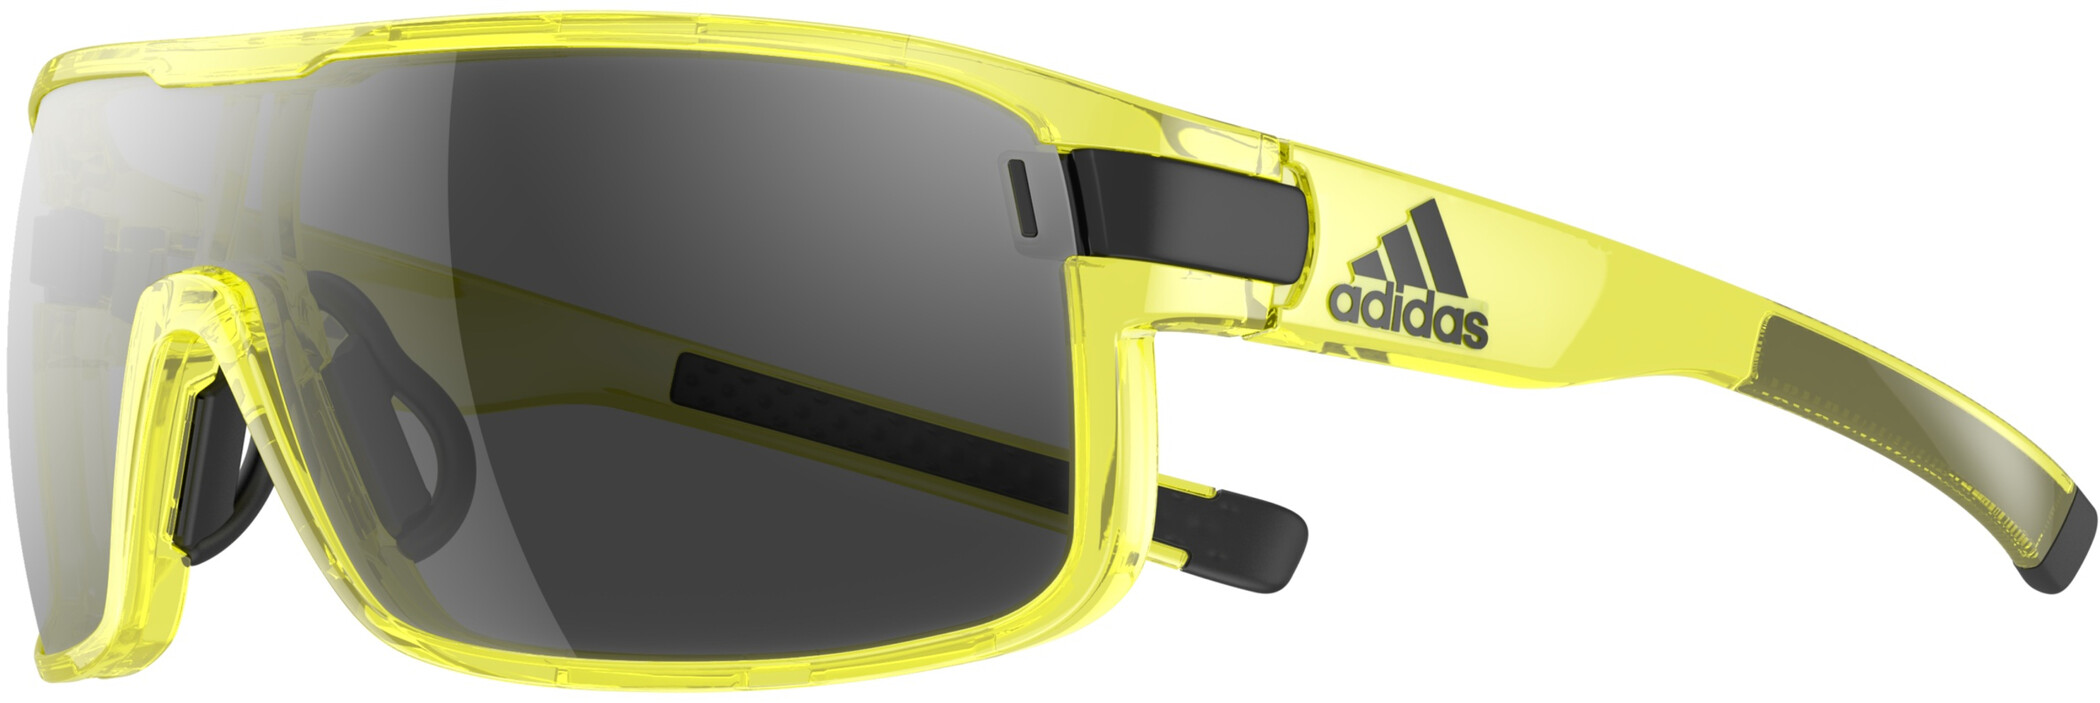 adidas Zonyk Cykelbriller L, yellow transparent/grey (2019) | Glasses